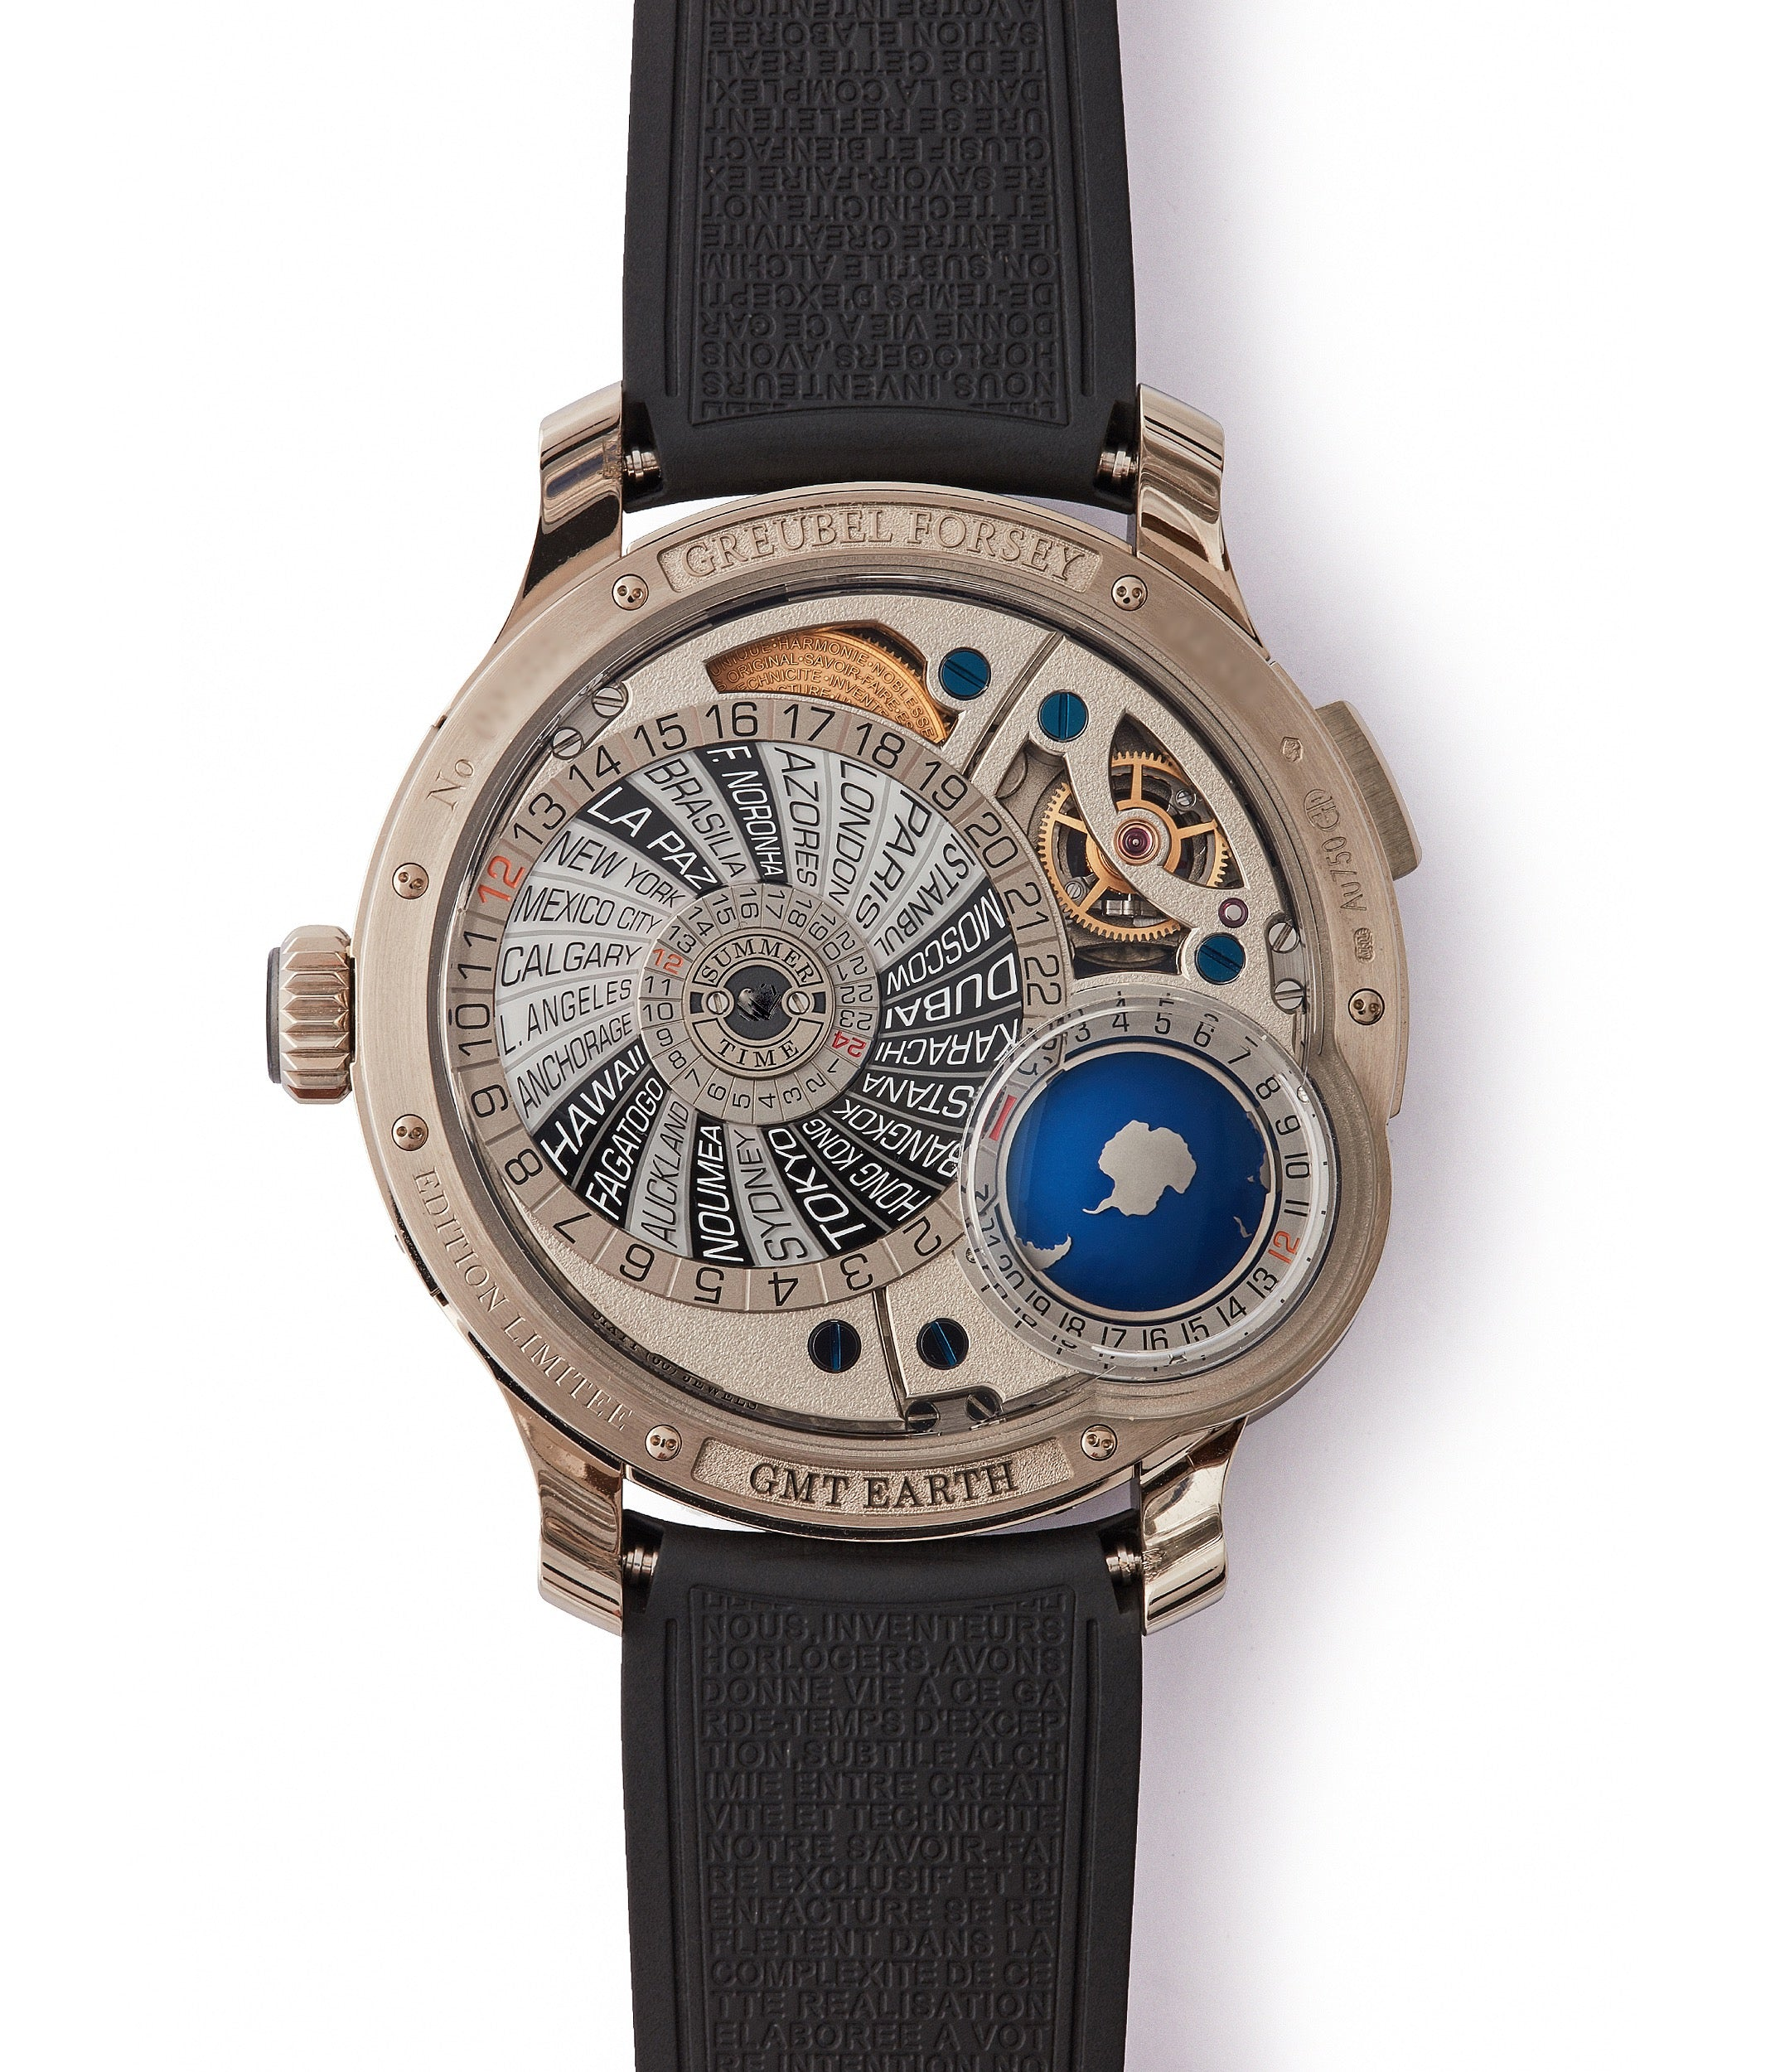 Limited Edition rare Greubel Forsey GMT Earth with inclined Tourbillon